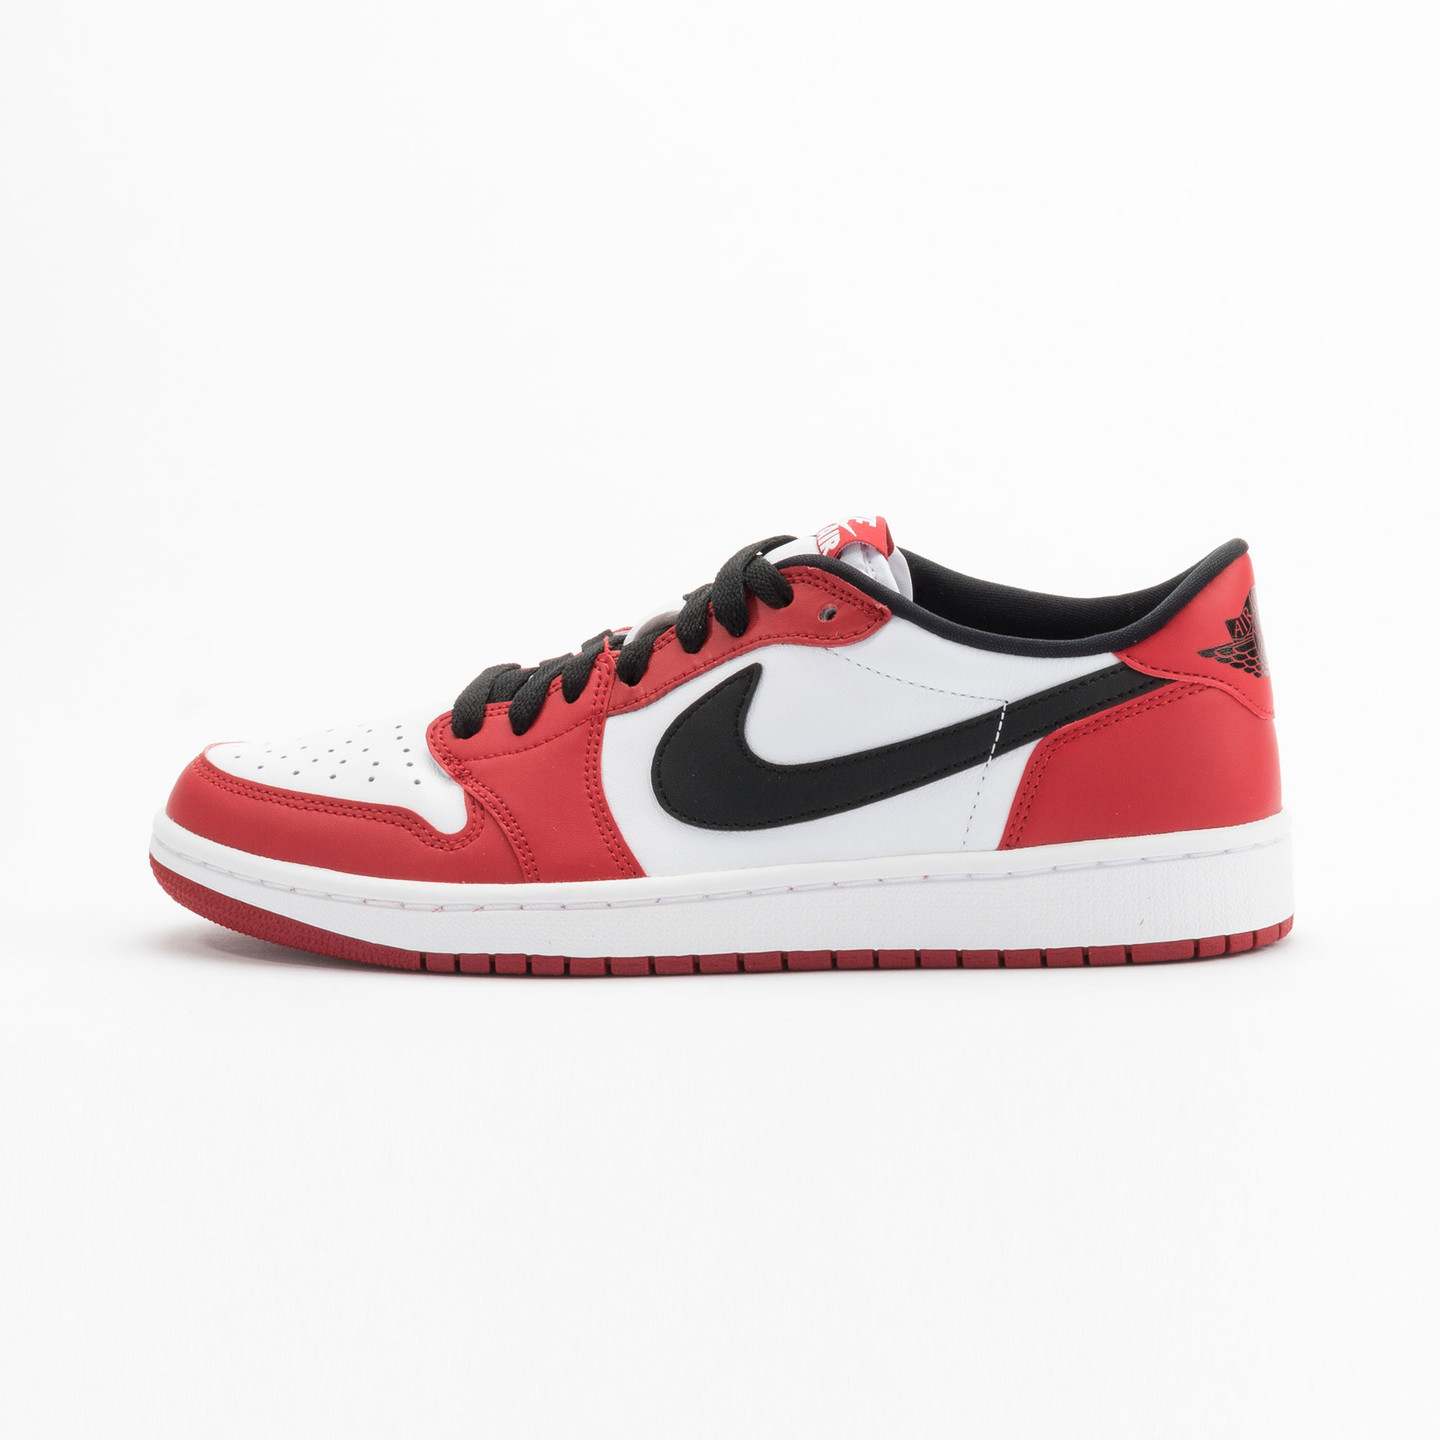 Nike Air Jordan 1 Retro Low OG 'Chicago' Varsity Red / Black / White 705329-600-42